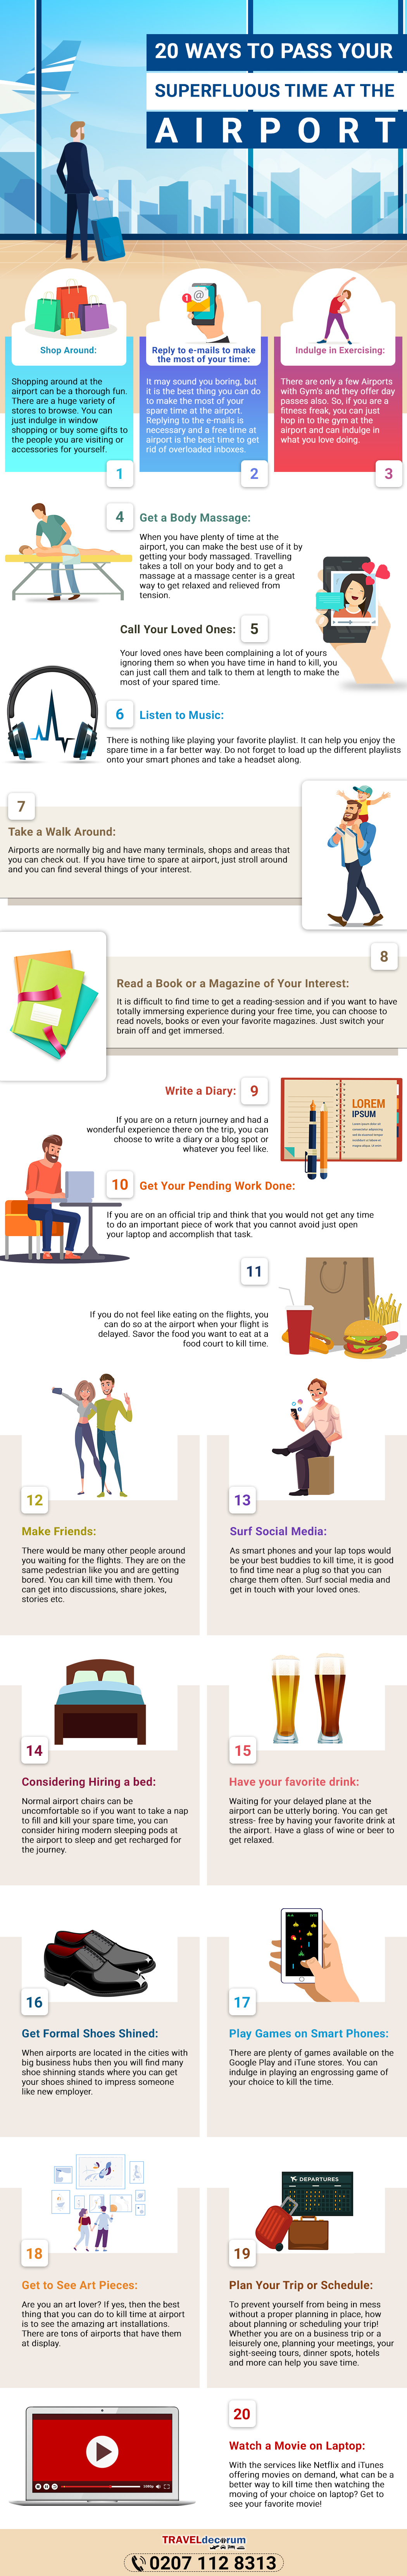 20 Great Ideas to Make Great Use of the Time Spent Waiting at Airports - Infographic